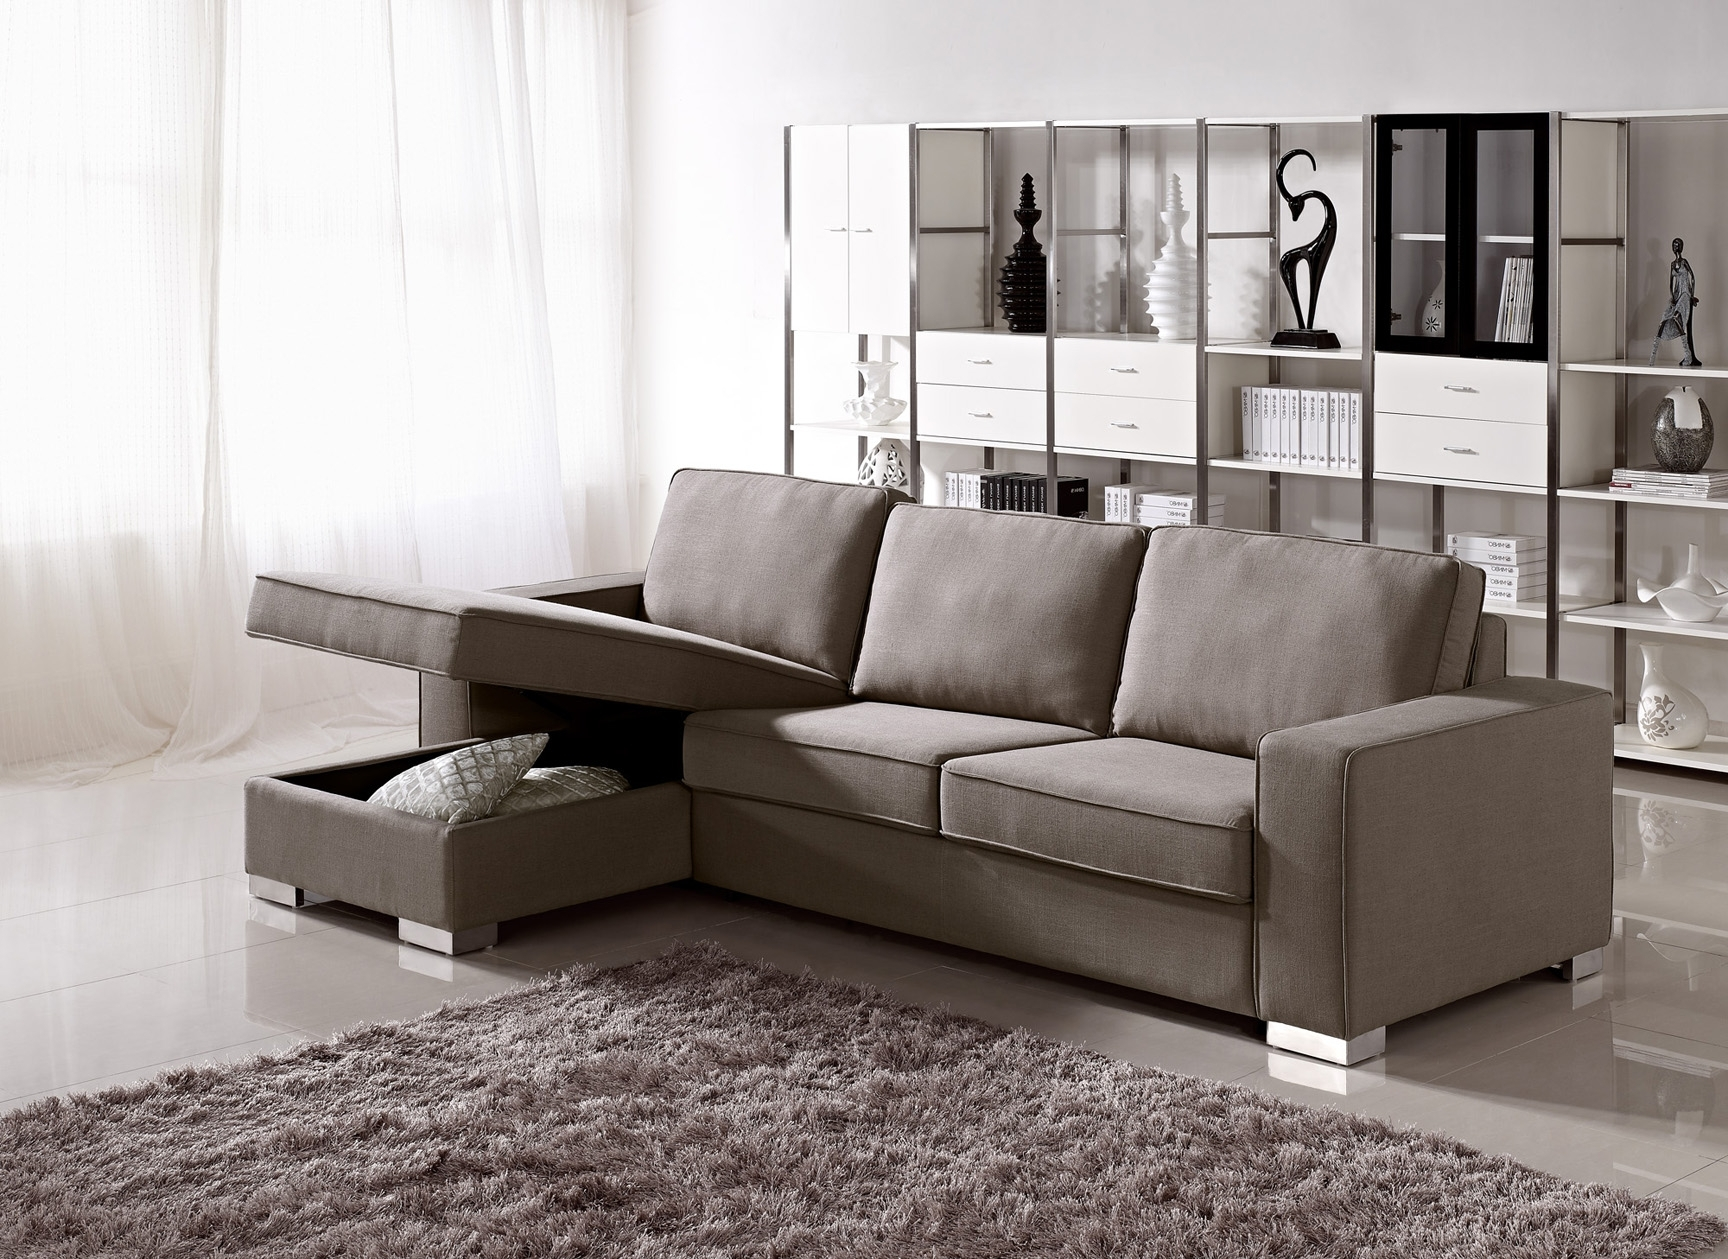 Nyc Sectional Sofas Within Recent Living Room Furniture Storage Modular Sofa With Thesofa Modern (View 12 of 15)